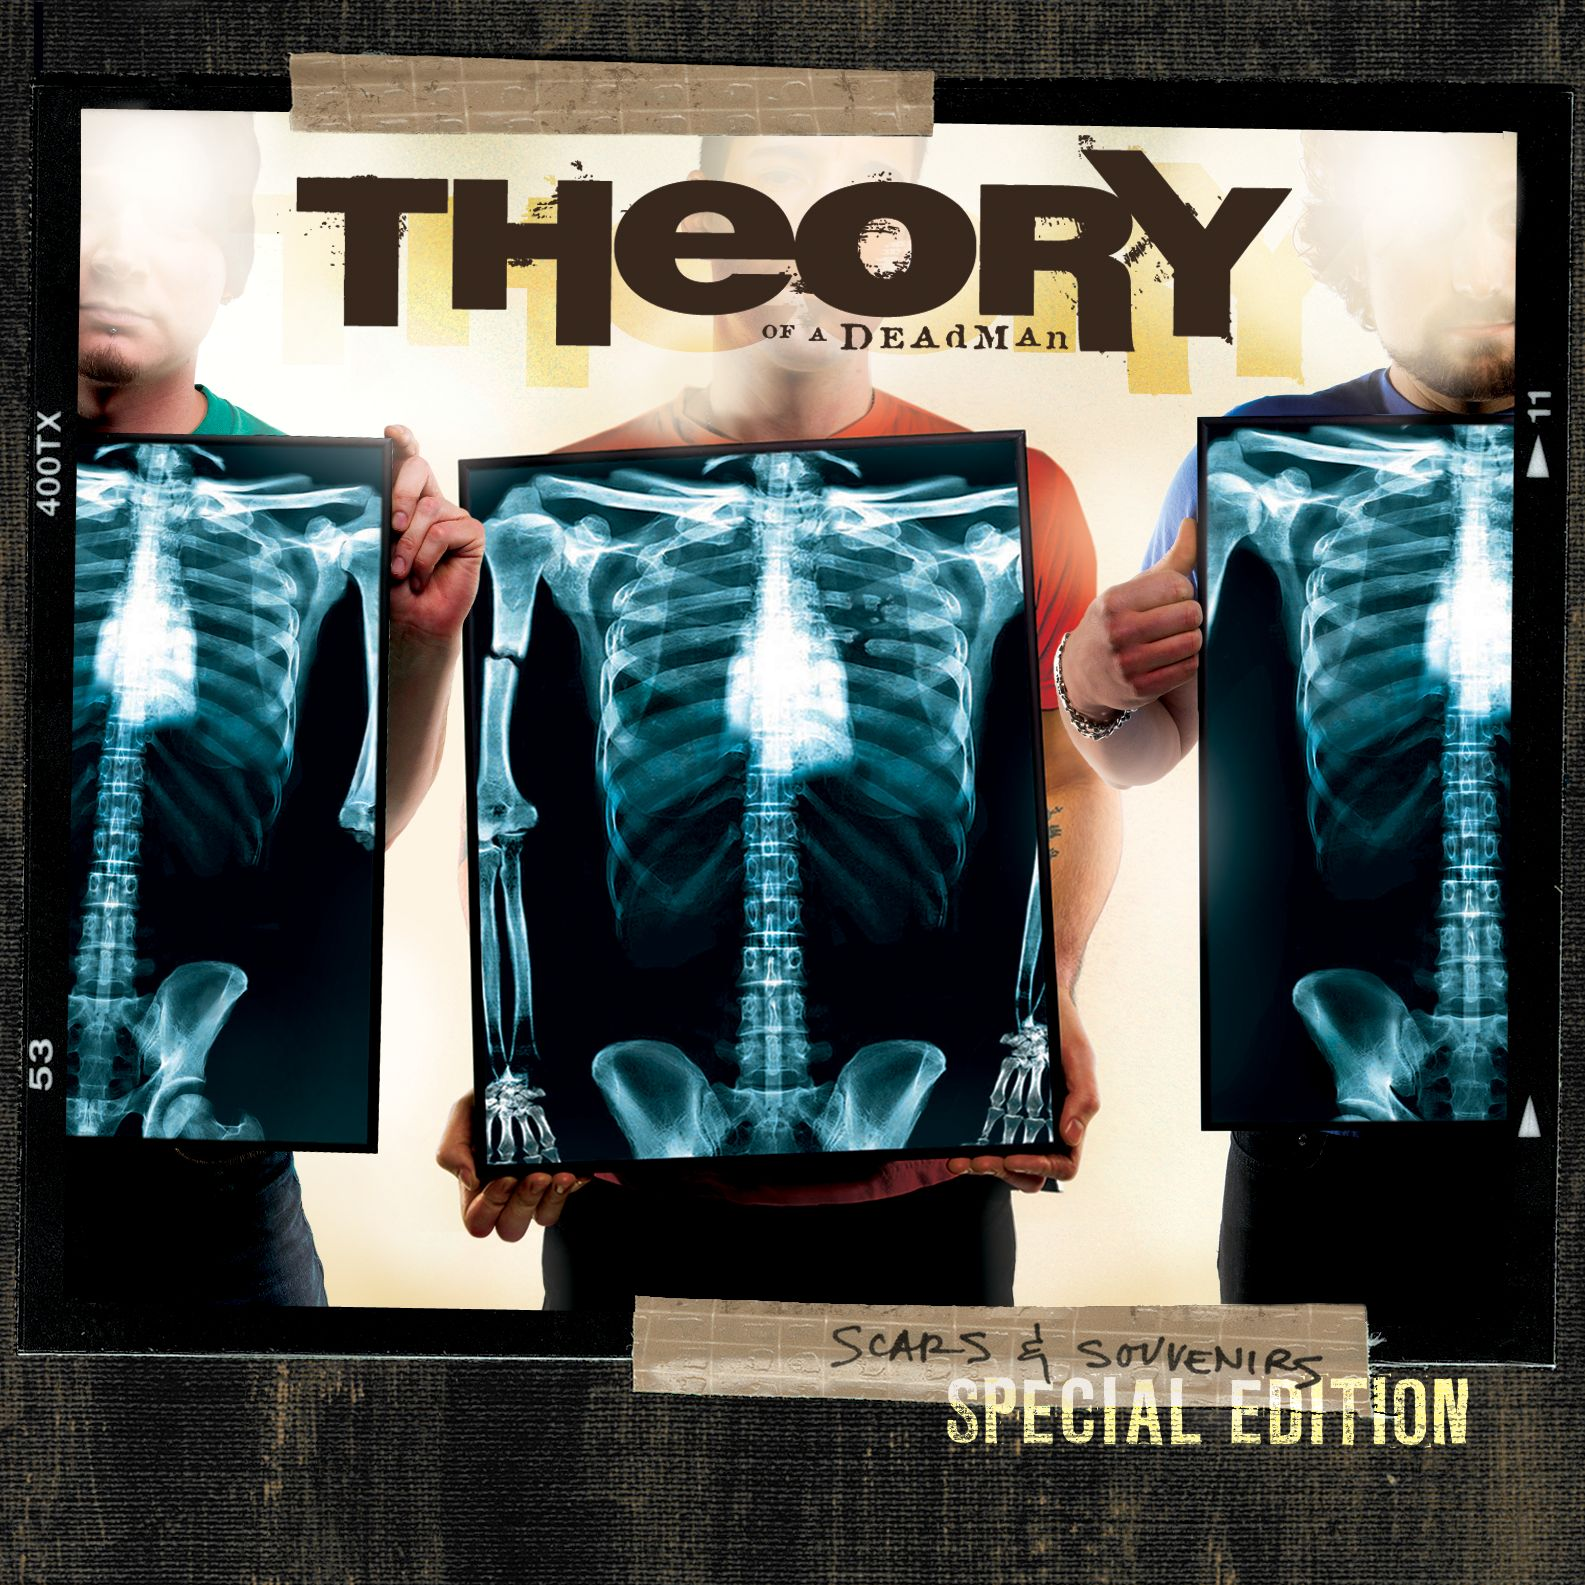 Listen Free To Theory Of A Deadman